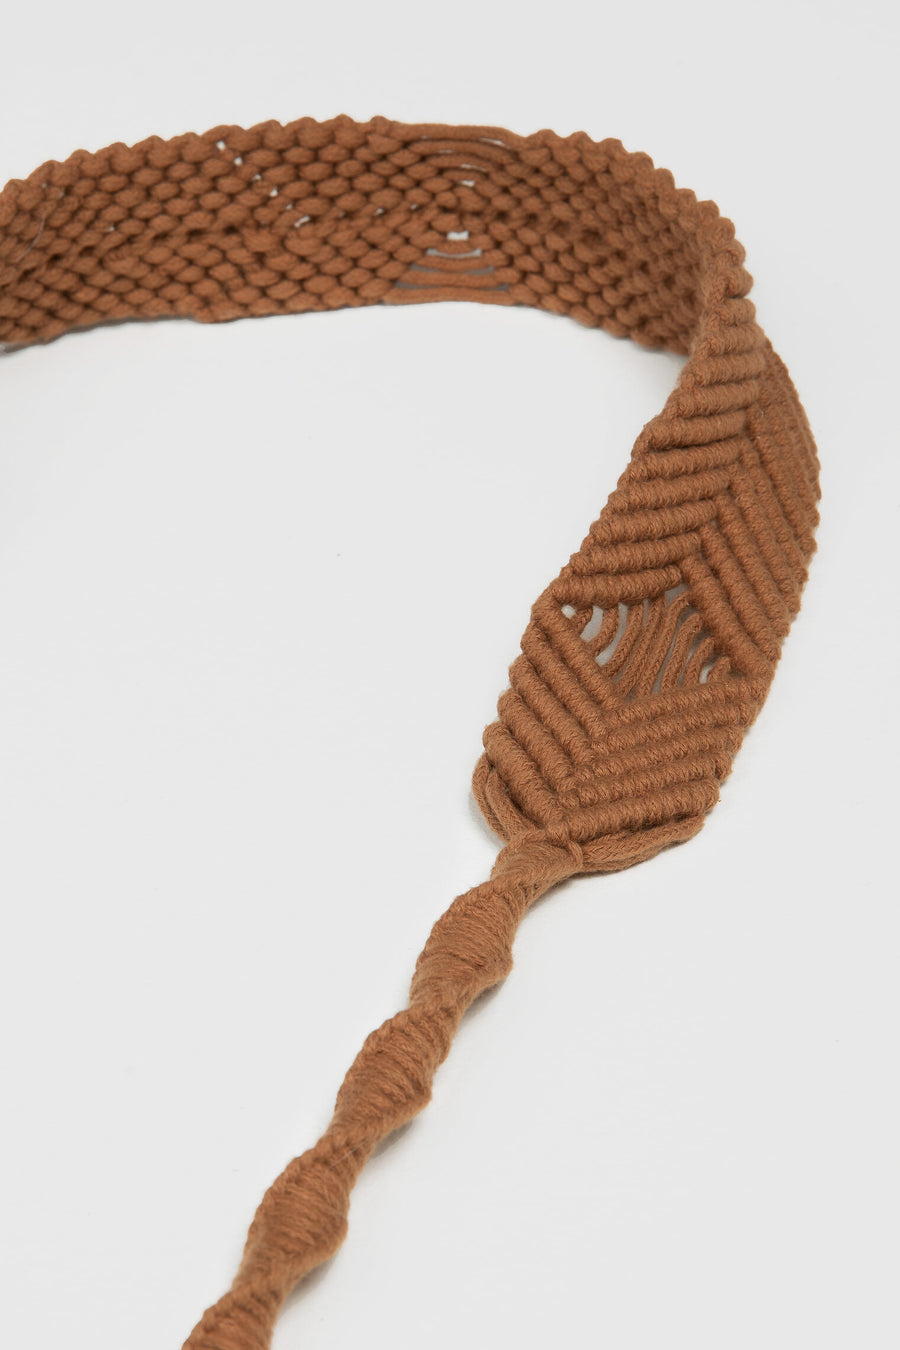 Lanamara - Noa Handmade Macrame Strap in Cinnamon Brown Cotton - Close Up View